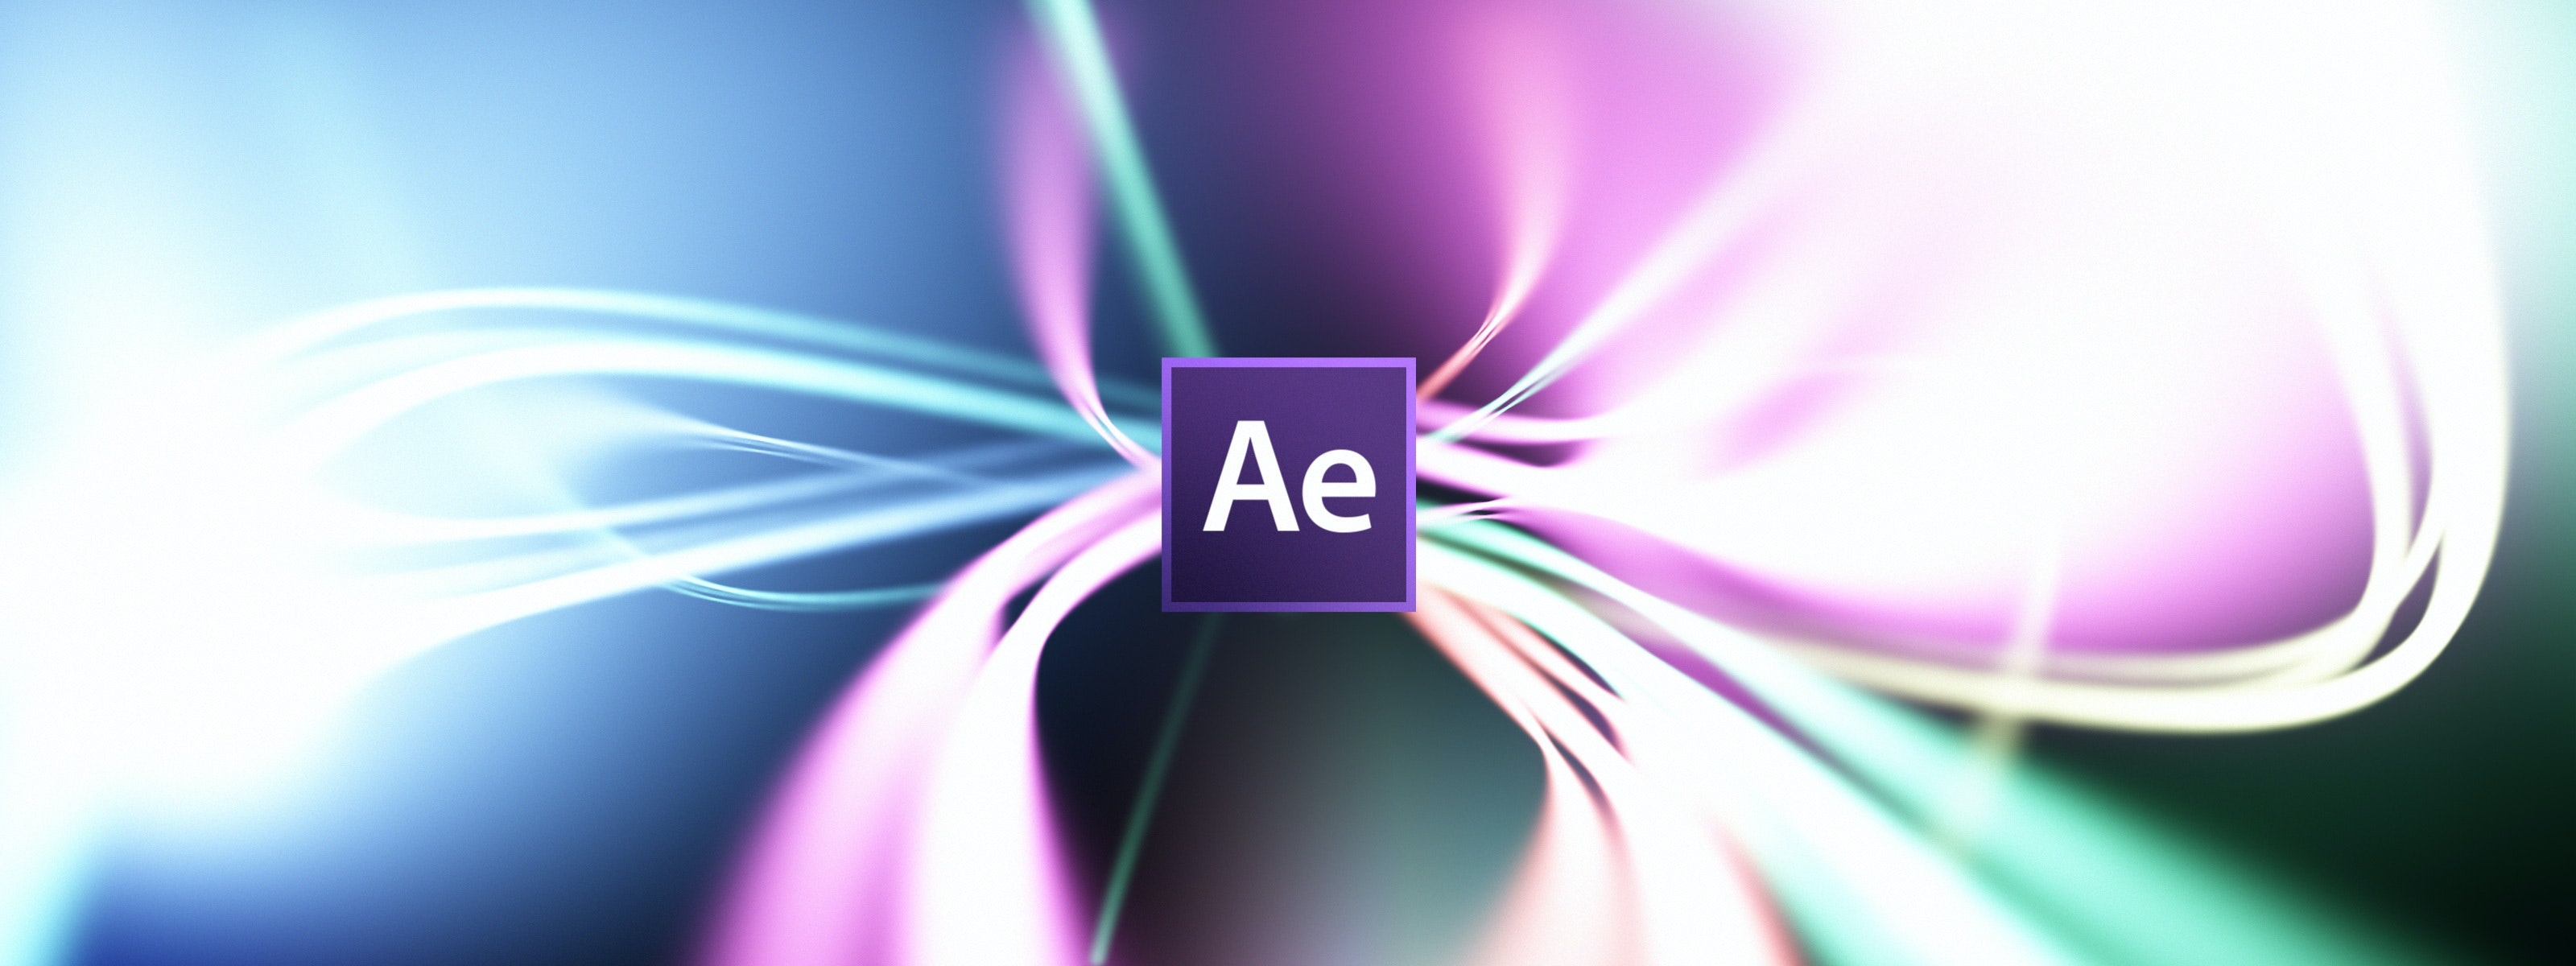 How To Create A Light Streak Animation In After Effects (3 Part